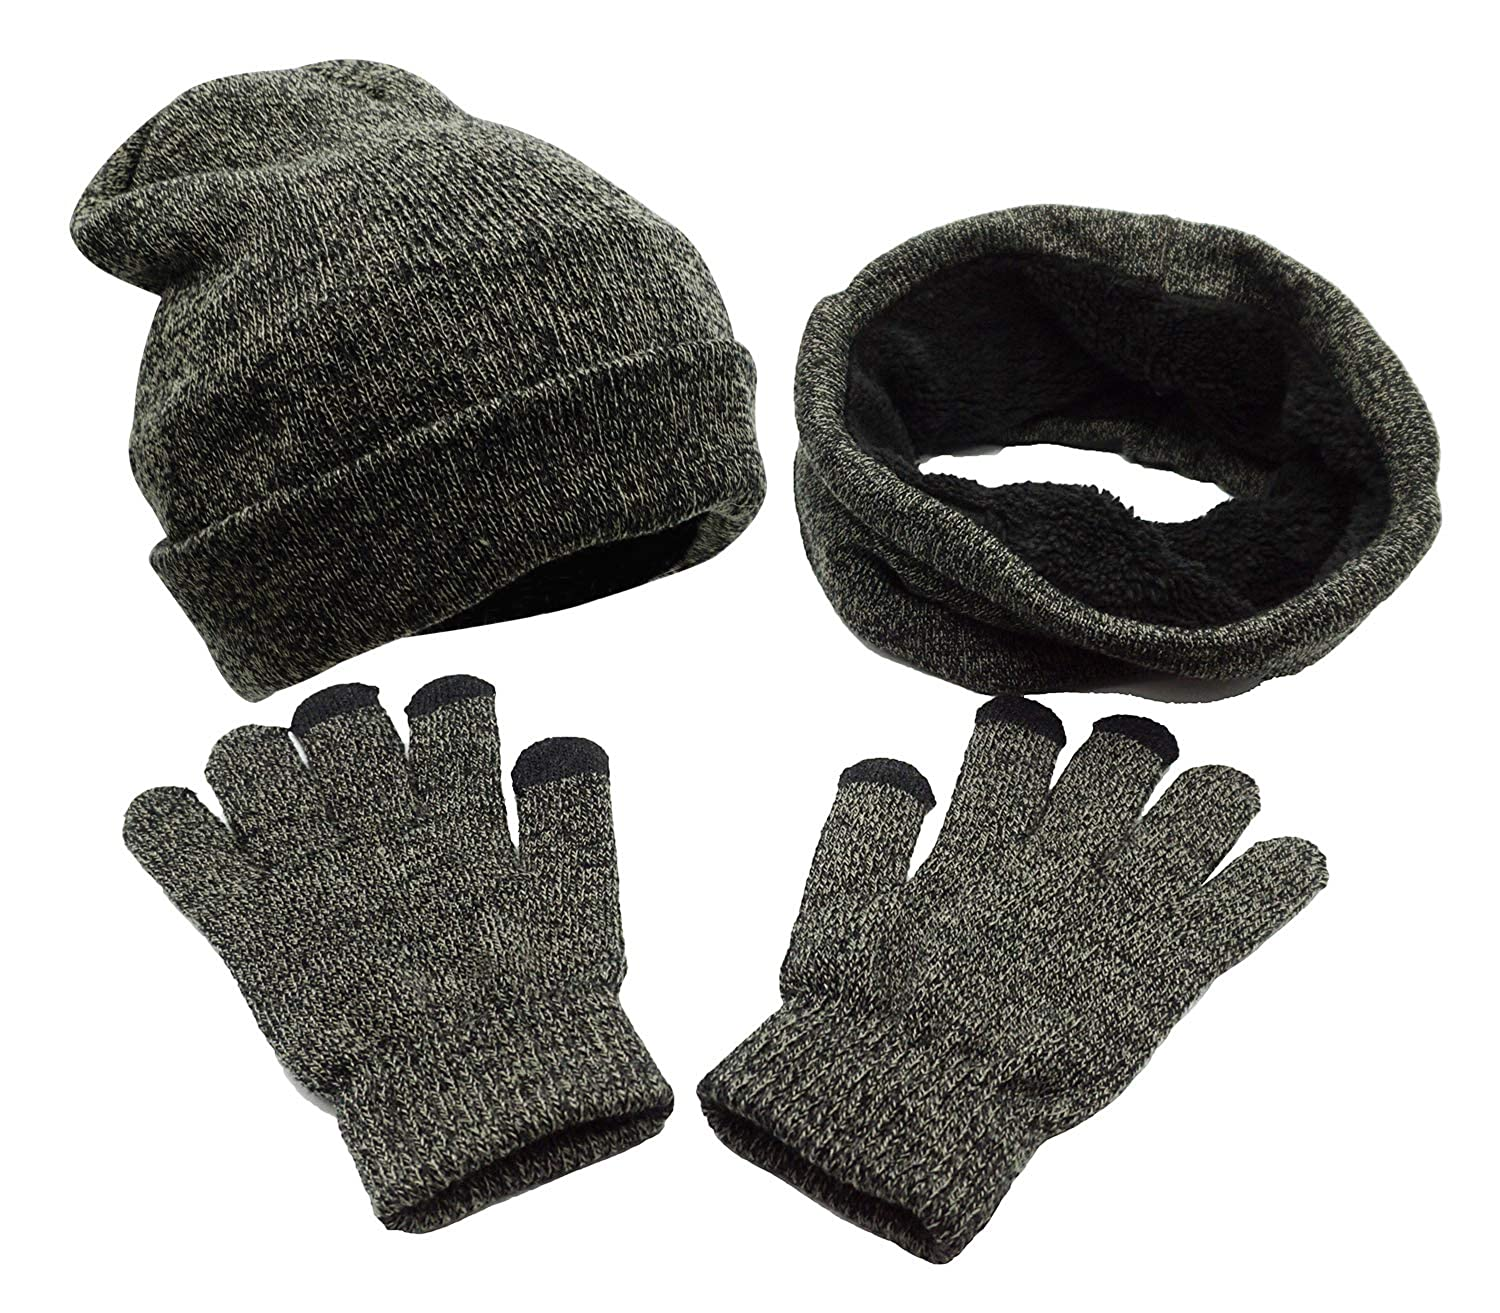 Bienvenu 3 Pieces Knitted Hat Set Winter Thick Warm Knit Hat + Scarf + Touch Screen Gloves Black ZLM18080043